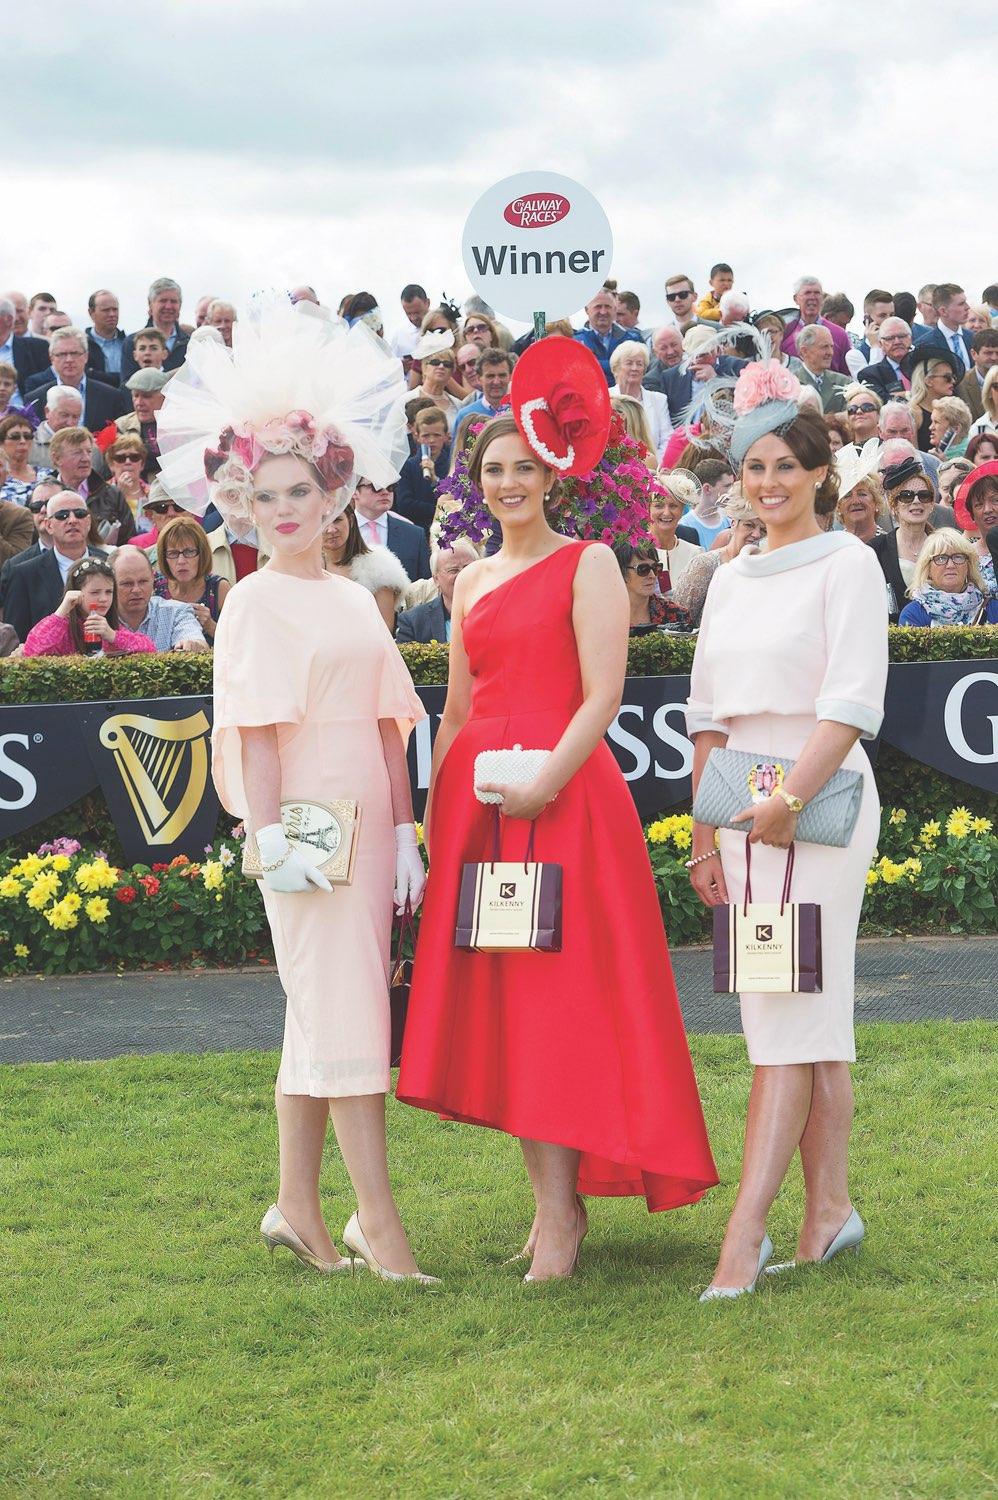 Alex Butler (middle)from, Co. Cork scooped the coveted title of Best Dressed Lady at the 2015 Galway Races Ladies Day, accompanied by Danielle Gingell (left) and Mary White (right).